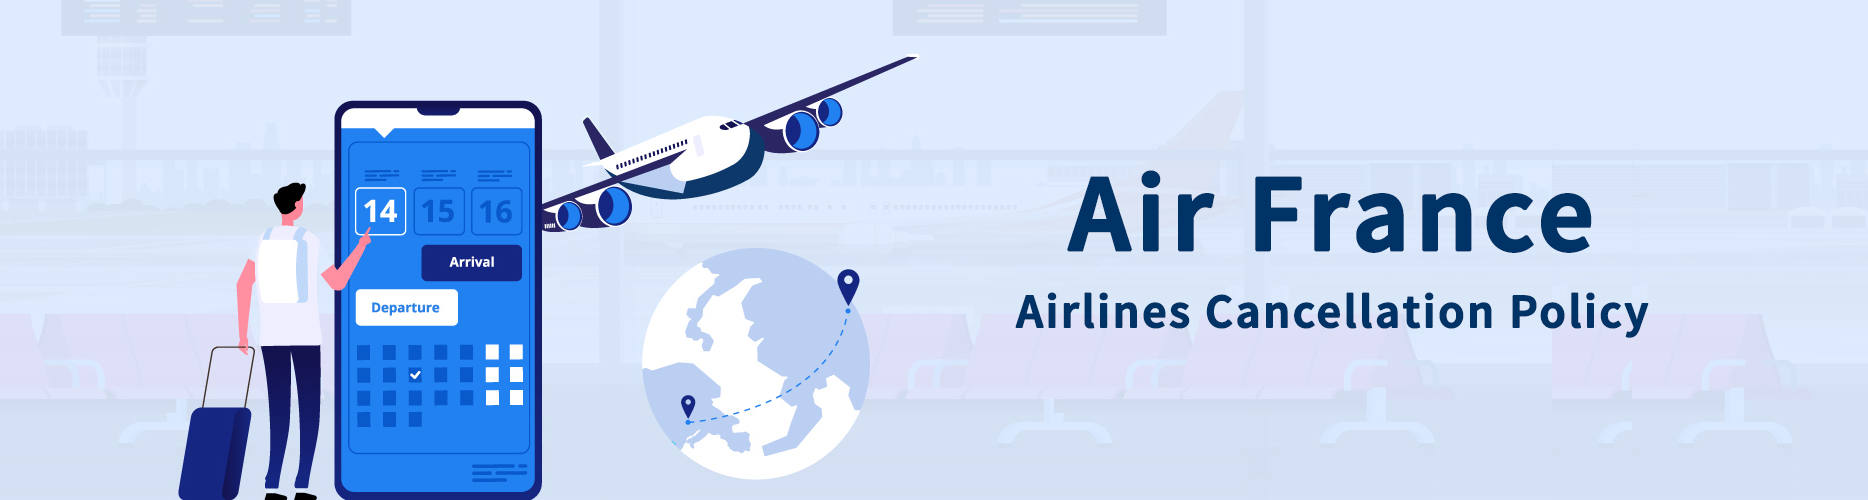 Air-France-cancellation-policy-offers